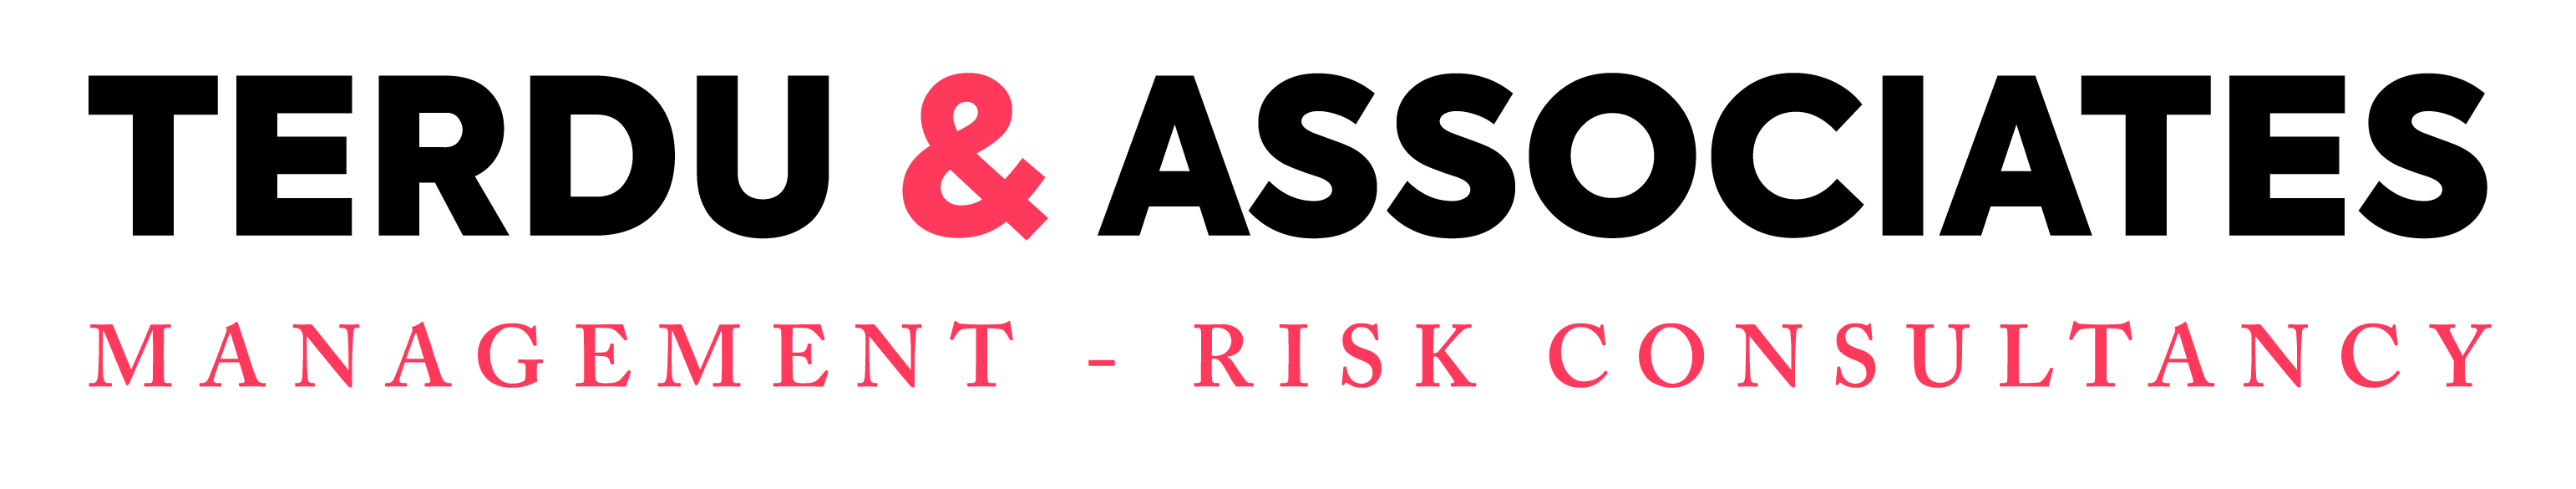 Terdu & Associates, Management & Risk Consultancy